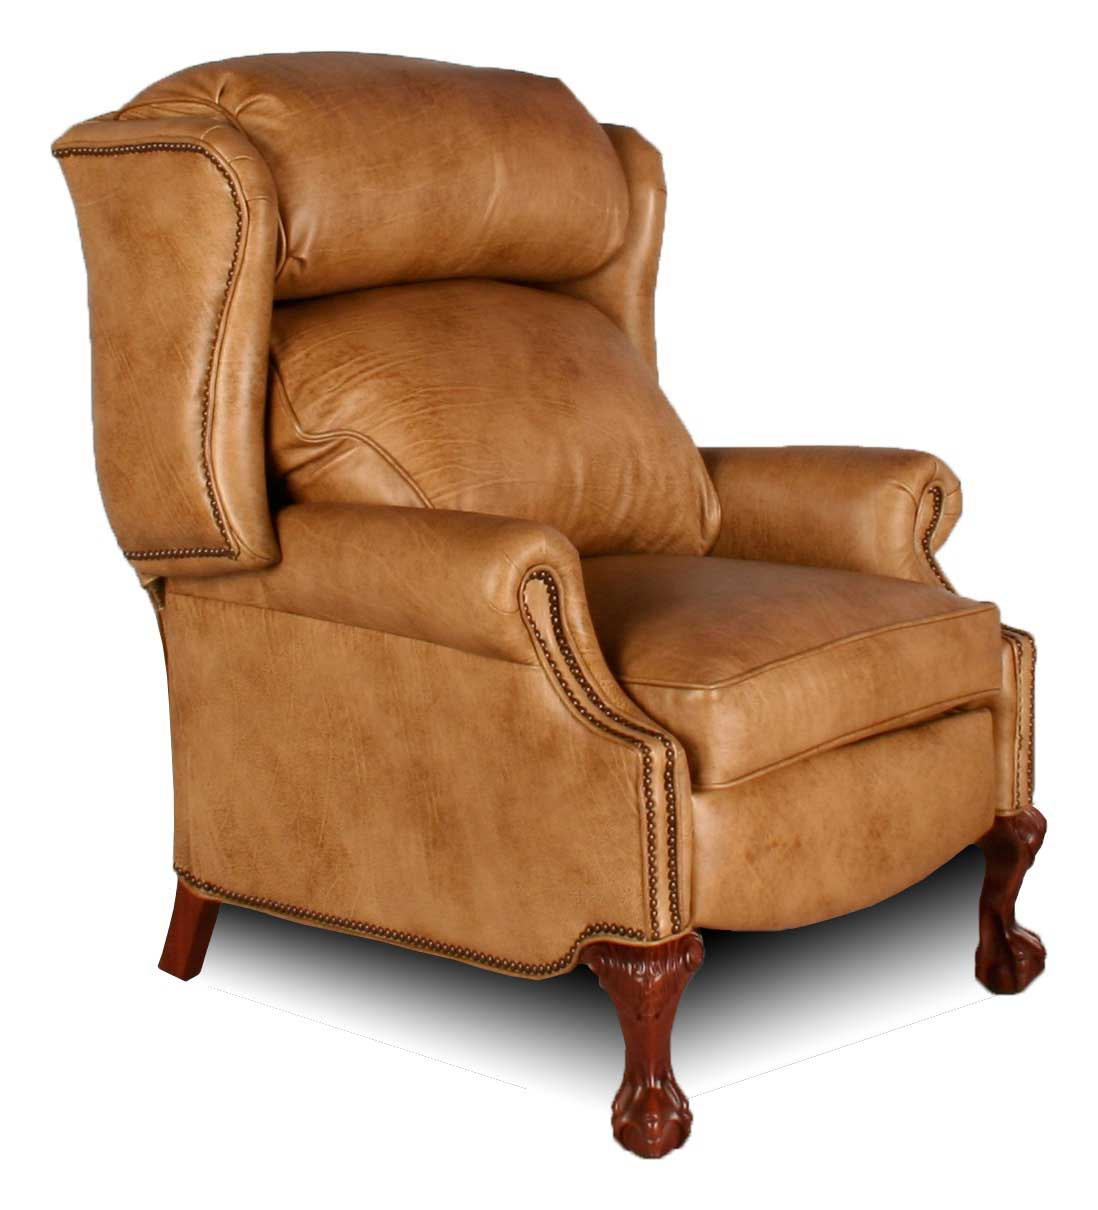 Leather Recliners